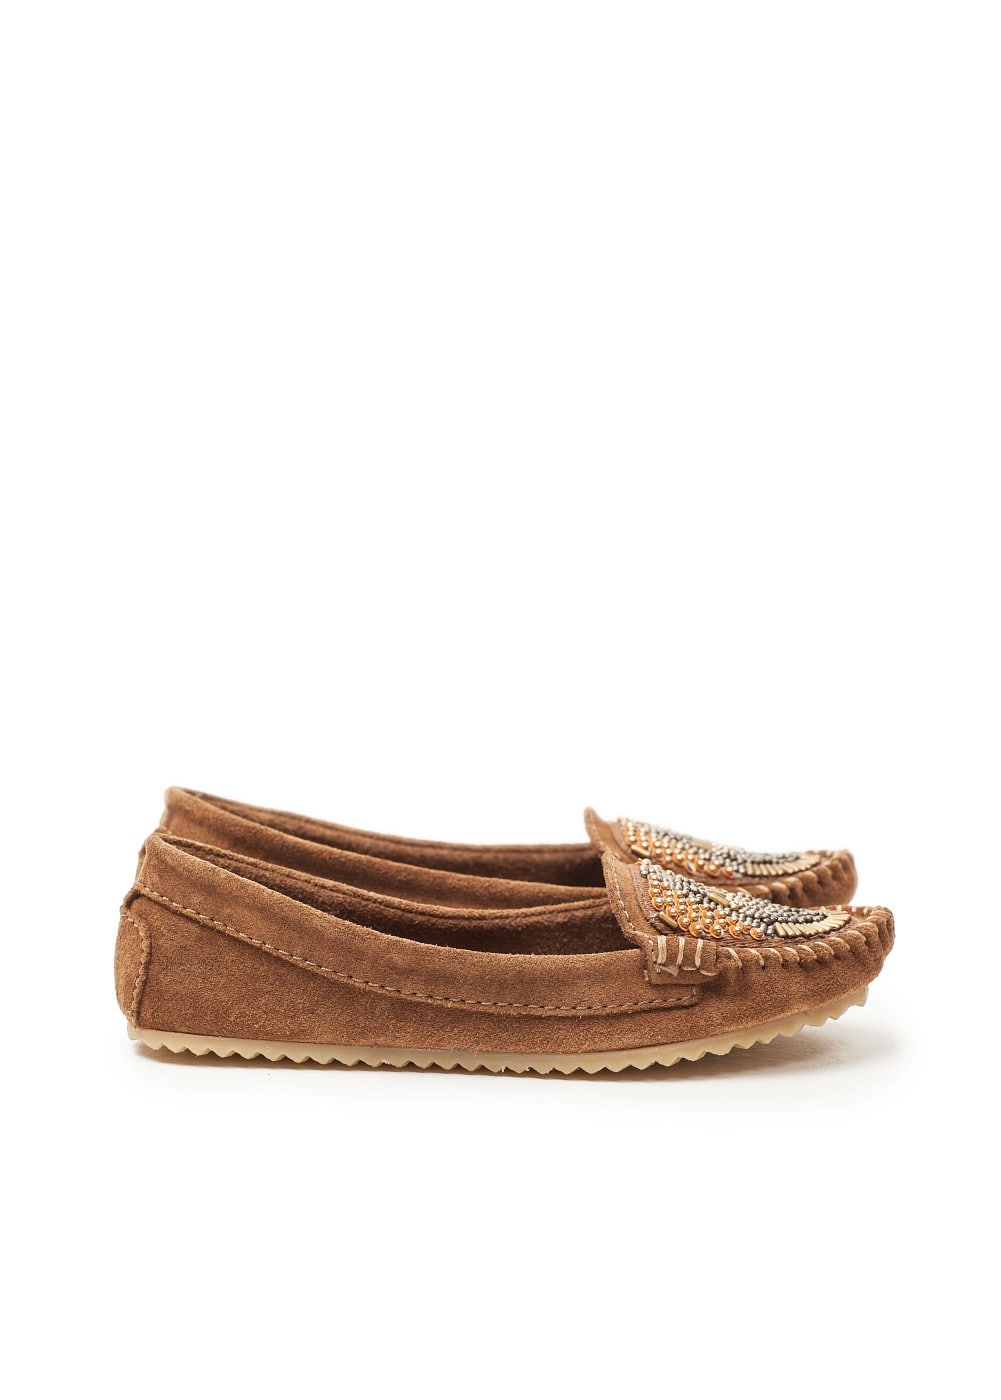 Beaded suede moccasins